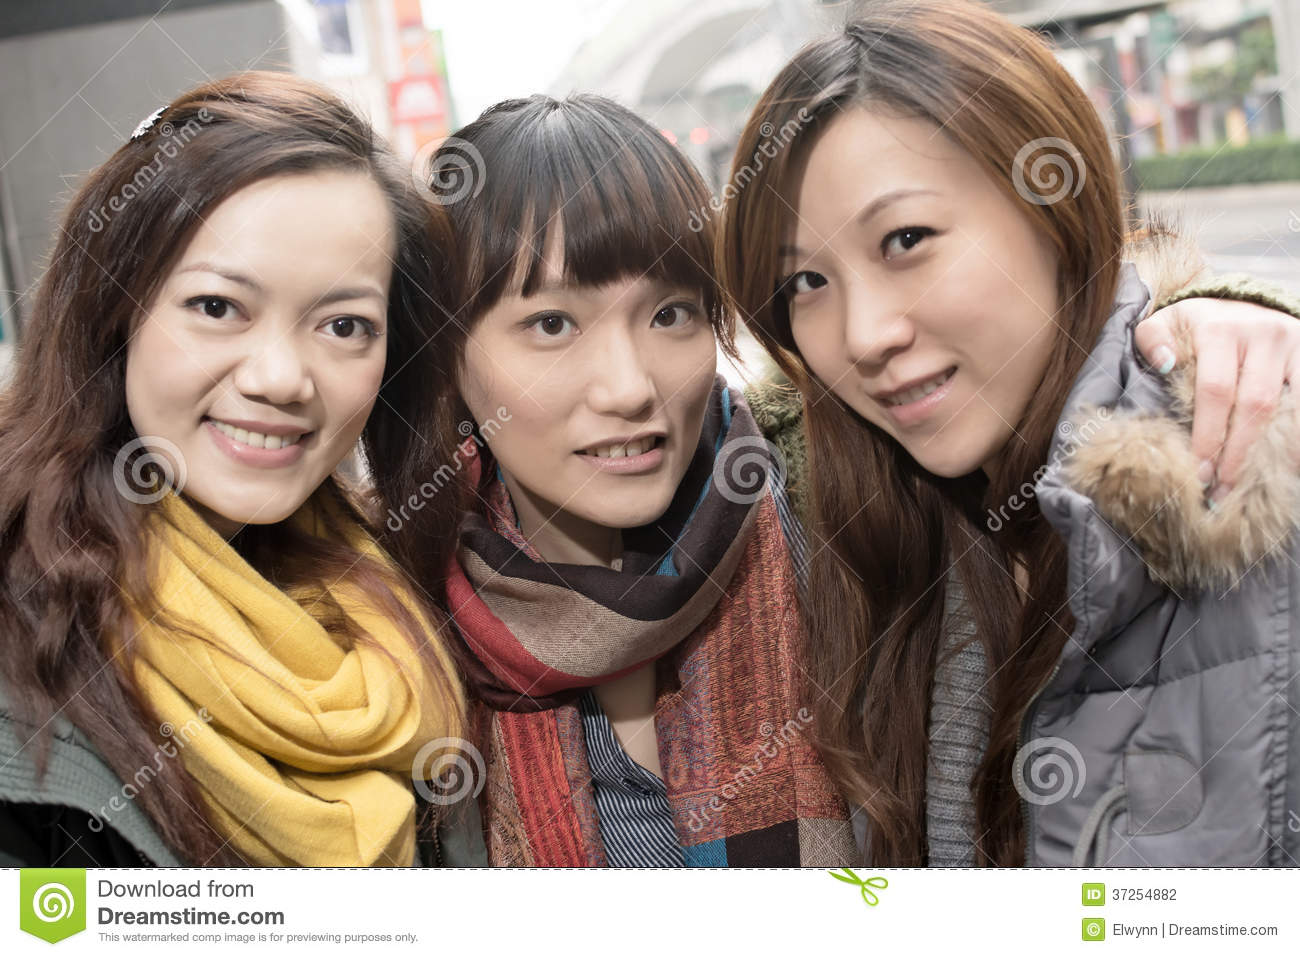 ellicott city asian personals Free to join & browse - 1000's of singles in ellicott city, maryland - interracial dating, relationships & marriage online.